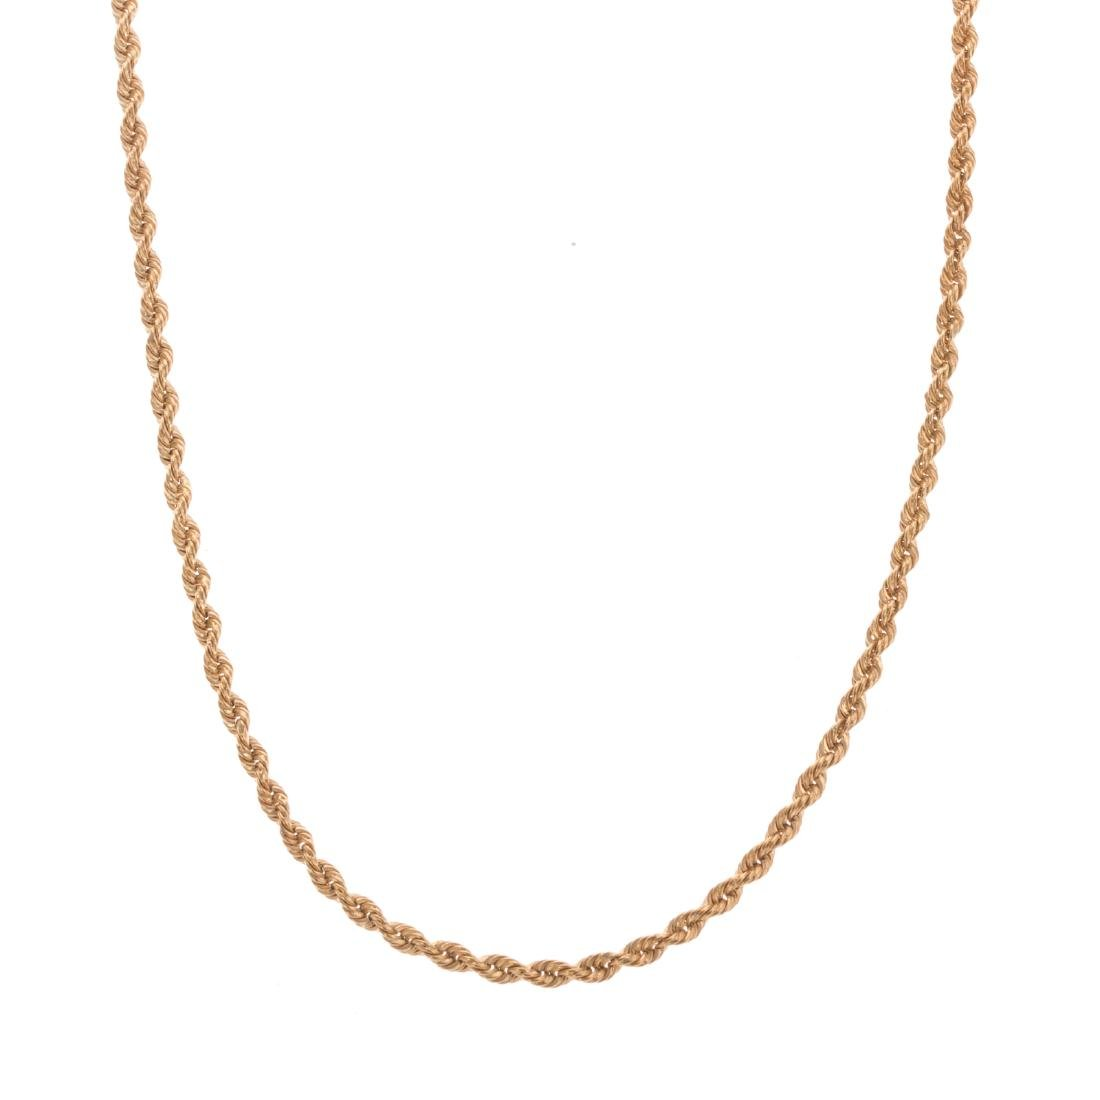 A Rope Chain in 18K Yellow Gold